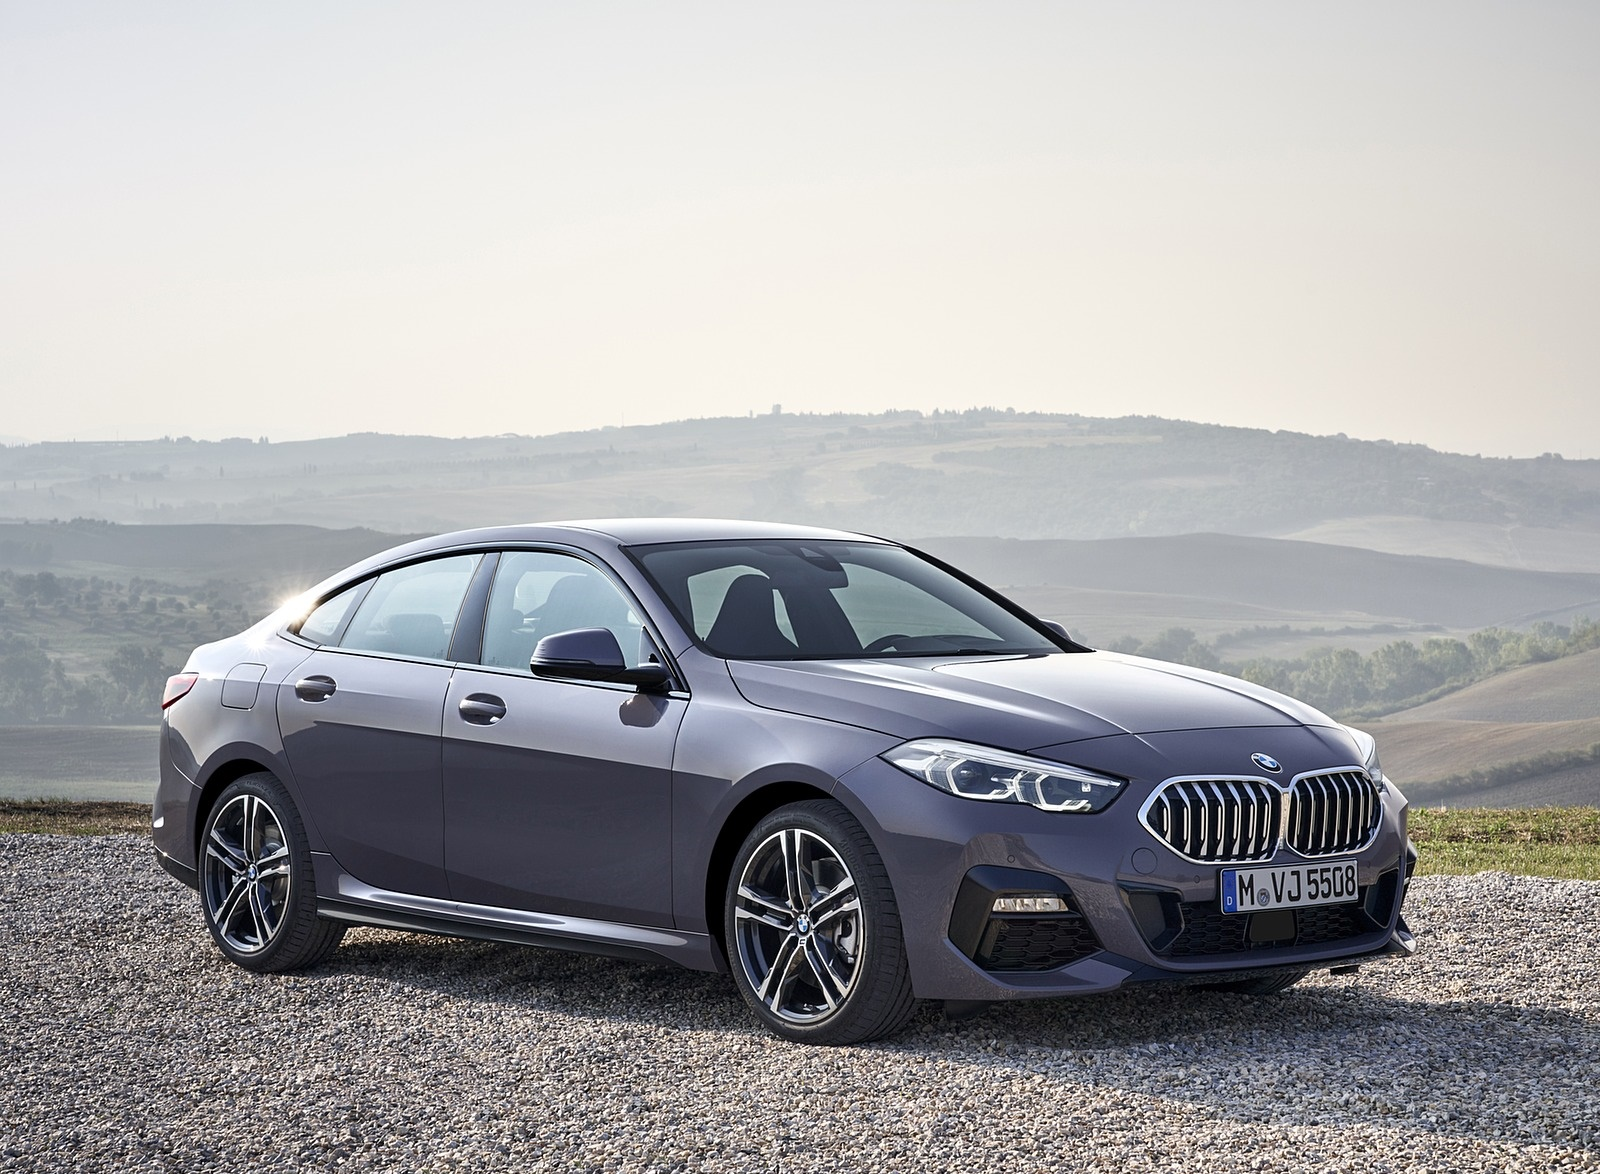 2020 BMW 2 Series 220d Gran Coupe M Sport (Color: Storm Bay Metallic) Front Three-Quarter Wallpapers (13)